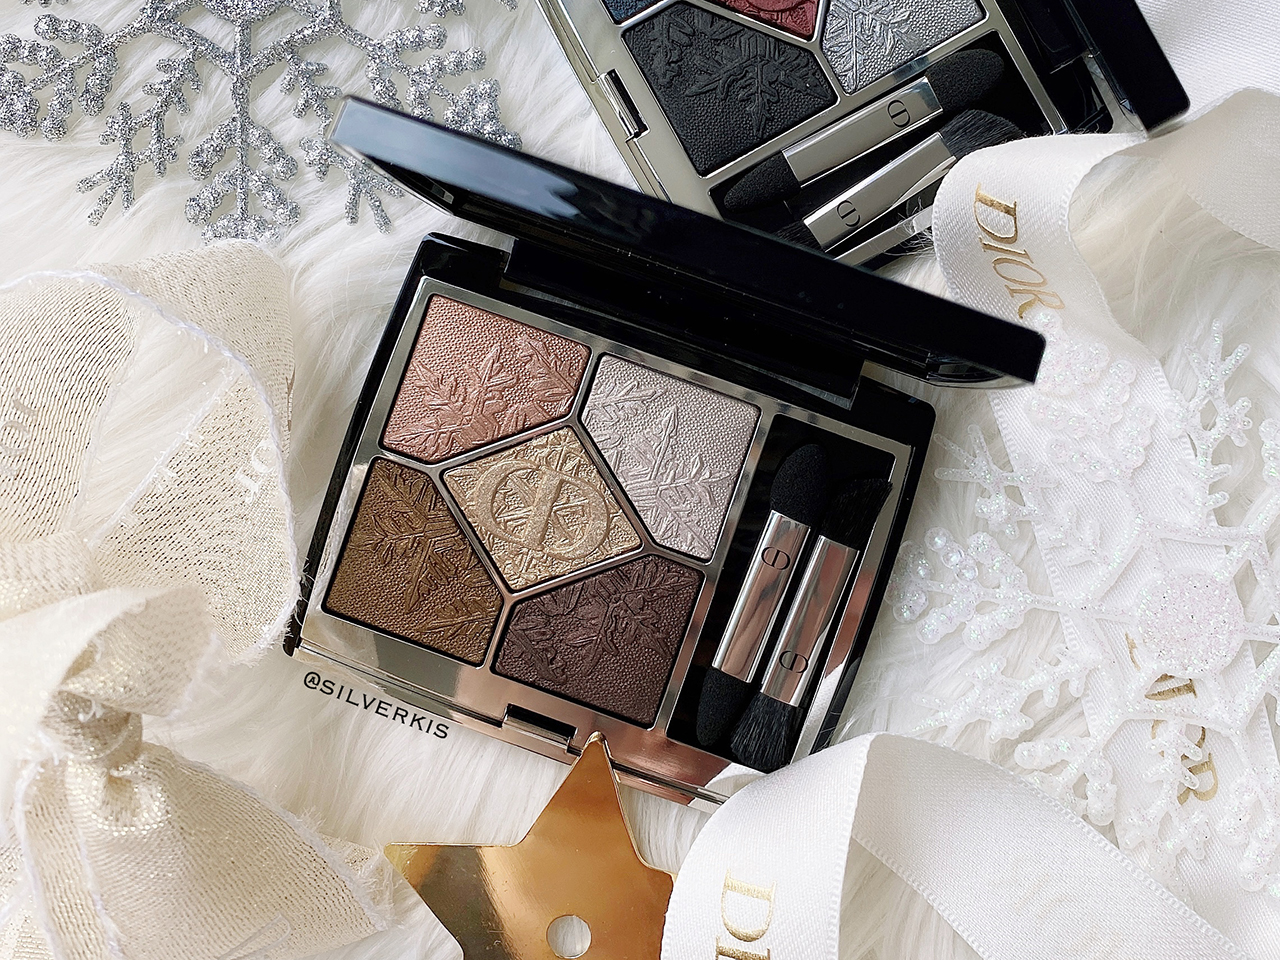 Dior 5 Couleurs Couture Golden Show Eyeshadow Palette for Holiday 2020